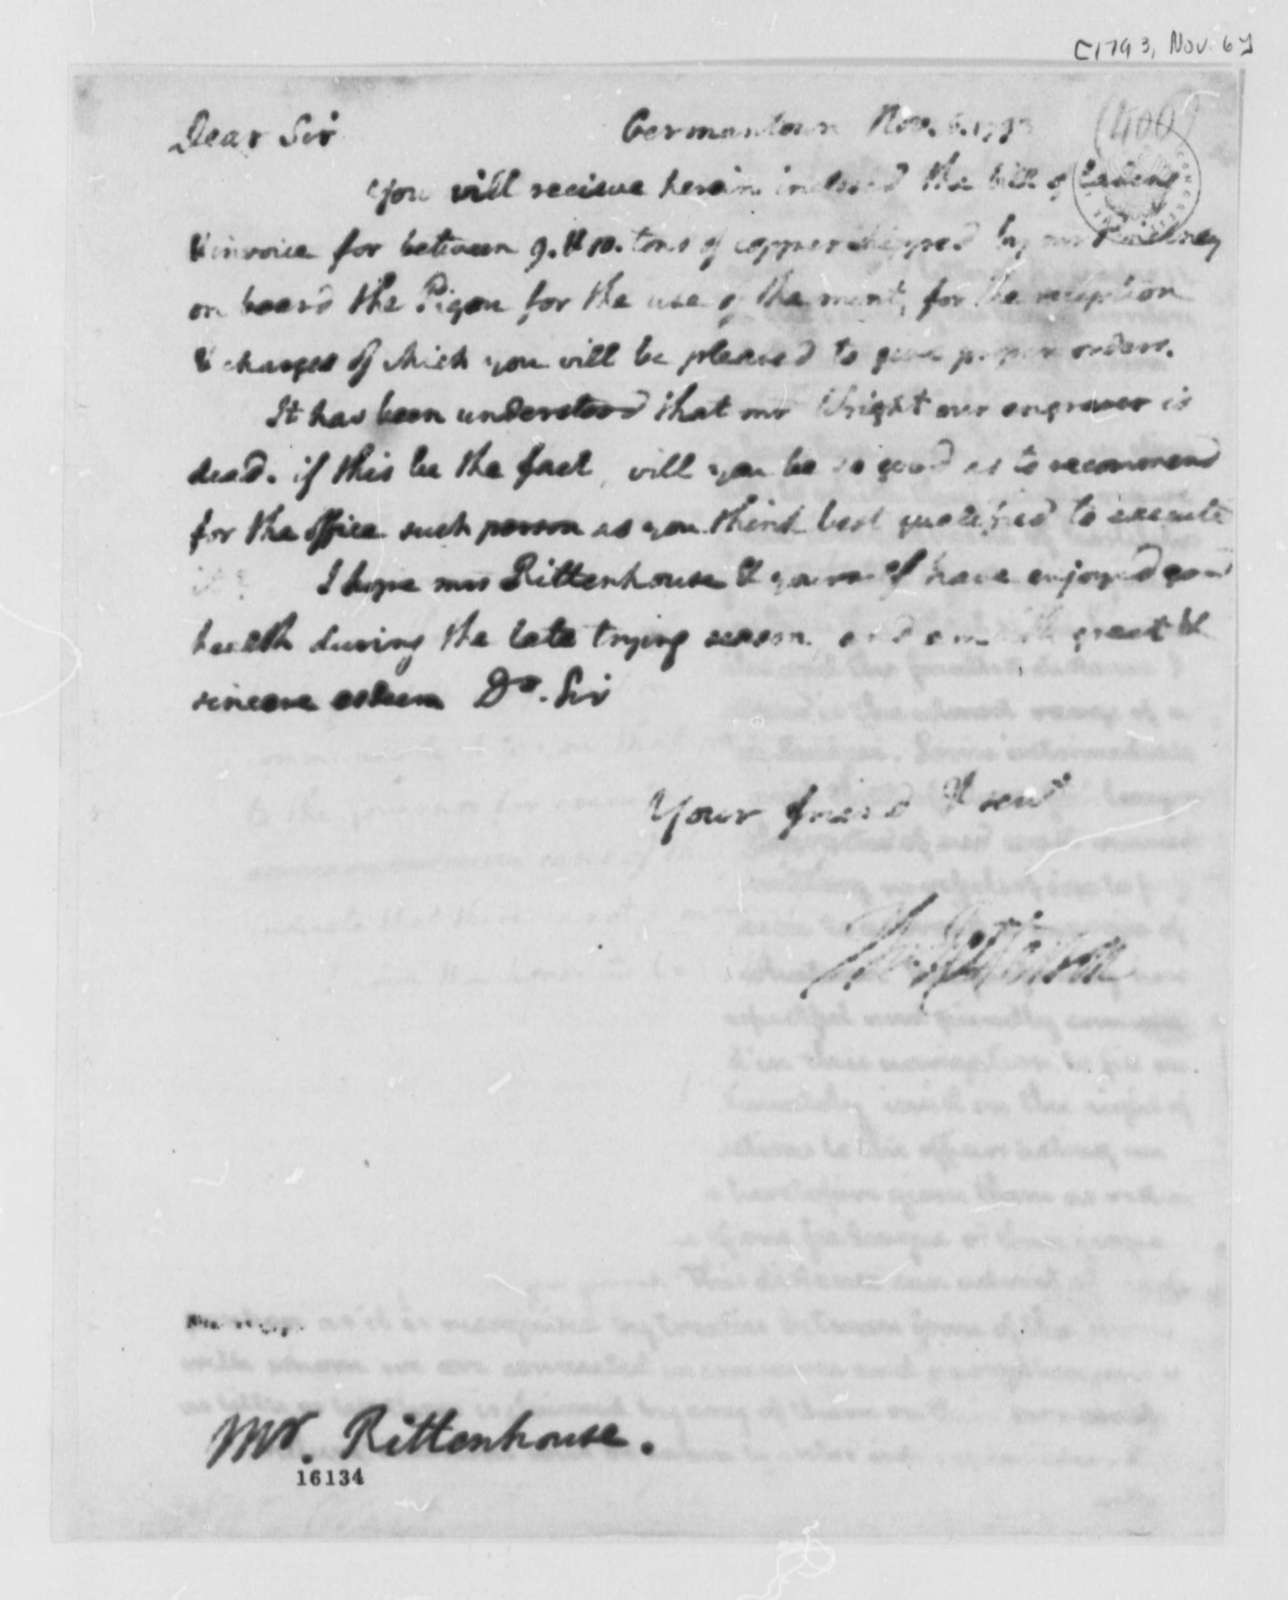 Thomas Jefferson to David Rittenhouse, November 6, 1793